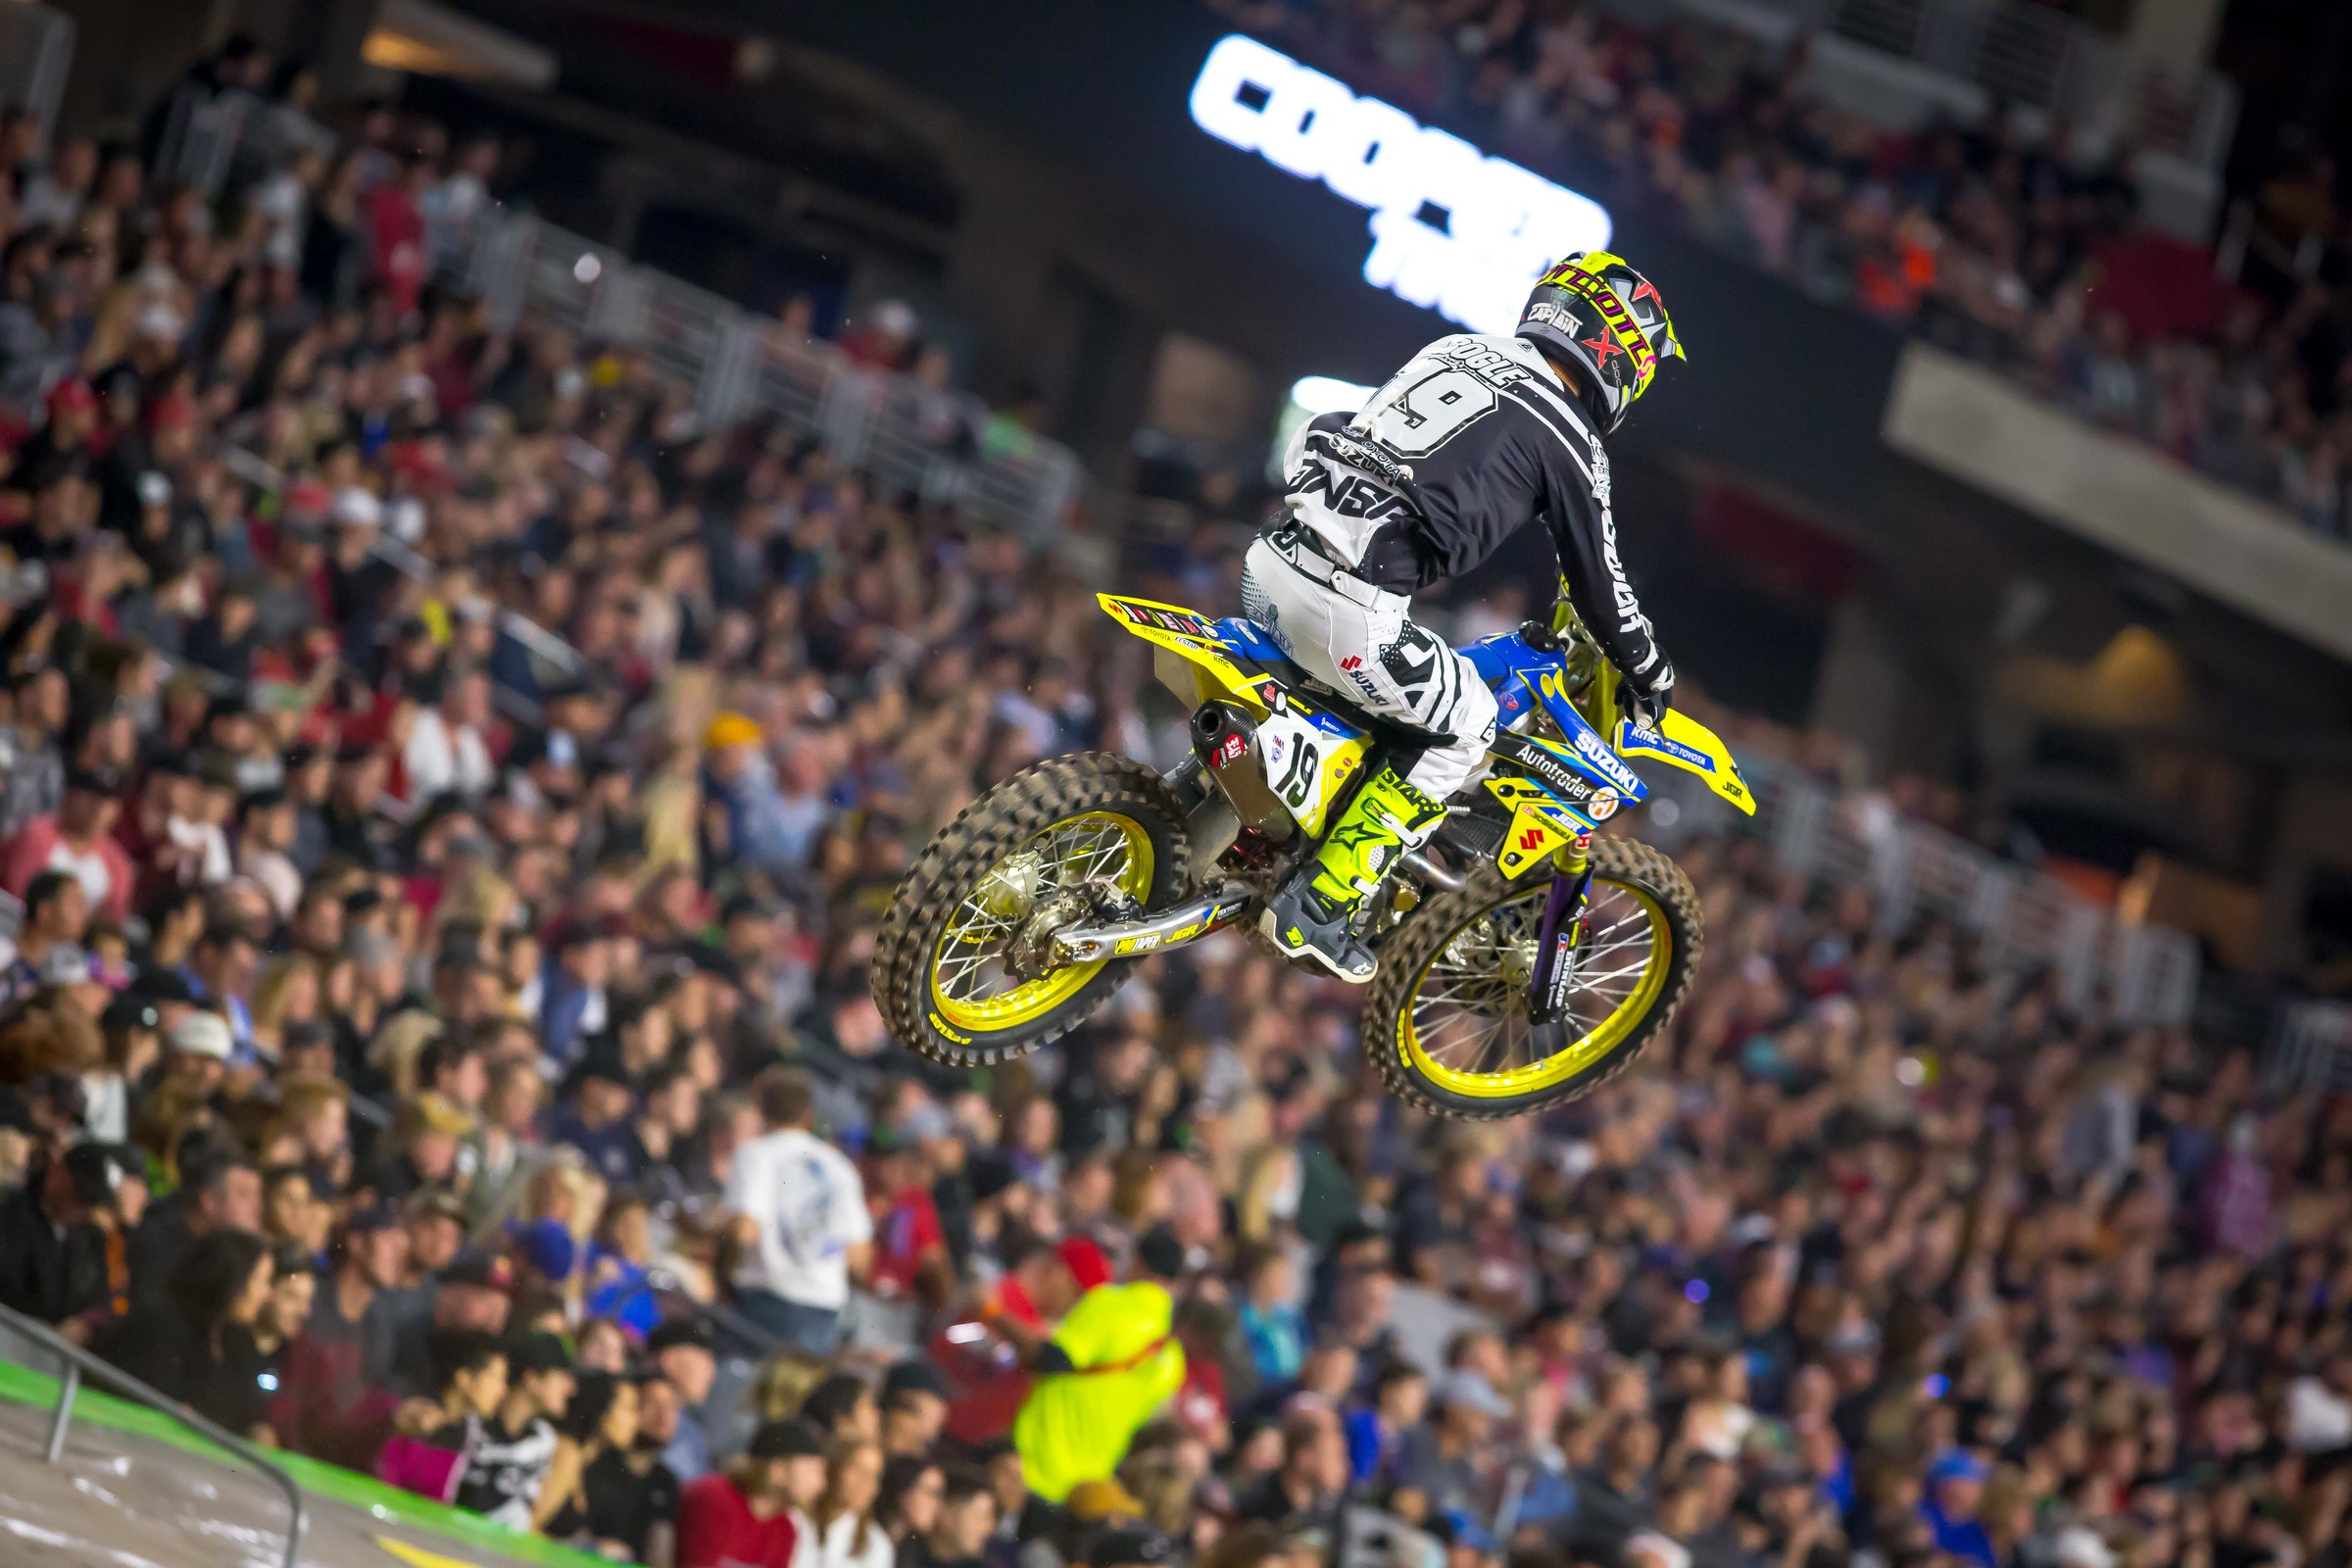 Bogle missed most of his only season with JGR Suzuki due to injury.